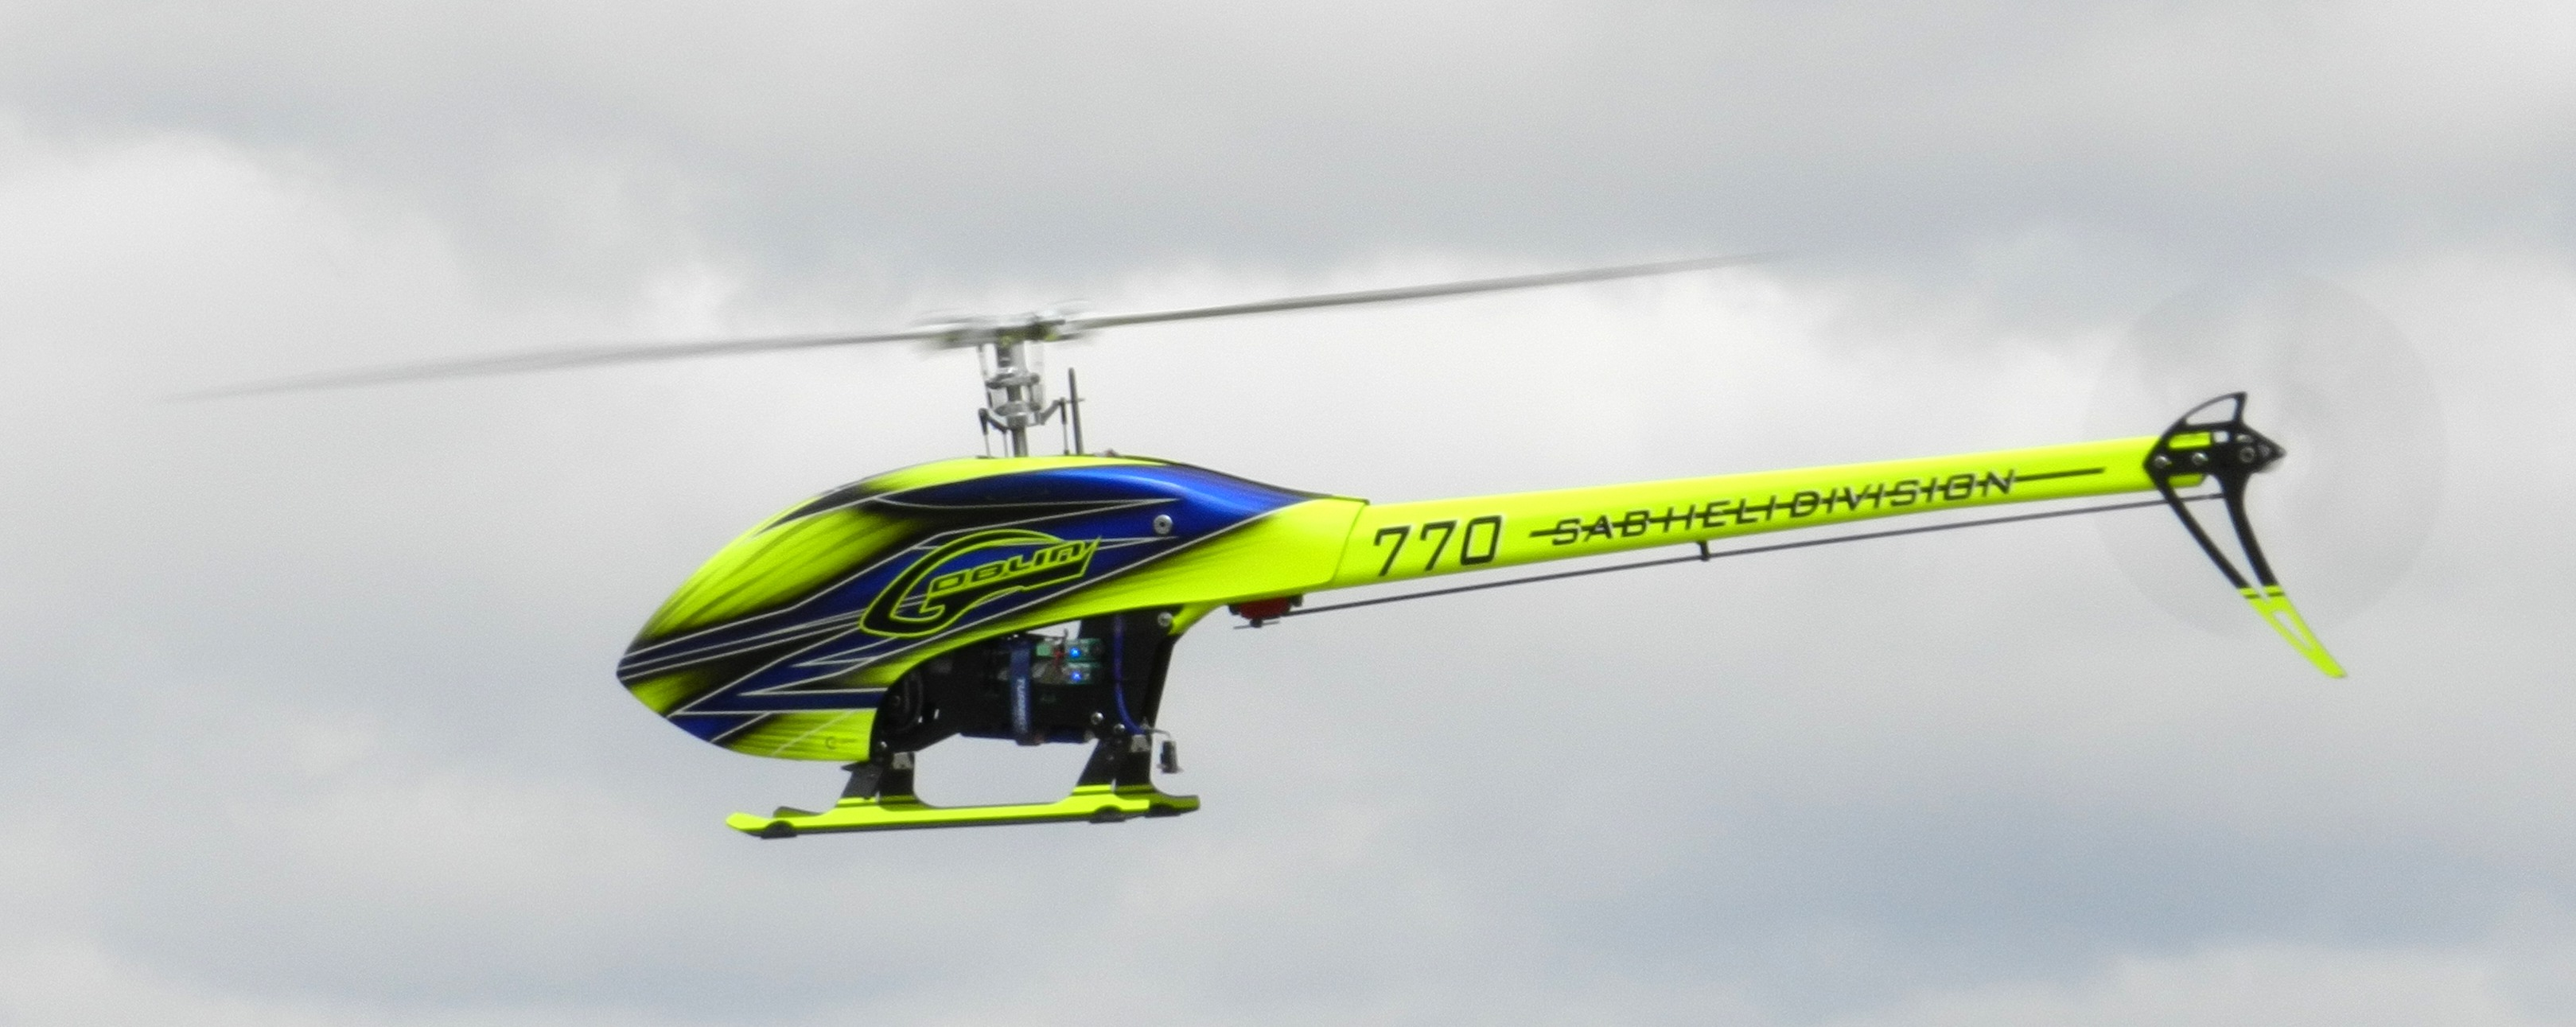 hobby lobby rc helicopters with Rchelihut on Kitprofile likewise Rc Helicopters At Hobby Lobby in addition Bmw I8 114 Licensed Concept Car 2 4 Ghz 4 Channel Steering Wheel Tri Band Full Function Radio Remote Control Rc Car additionally 265922 besides Article display.